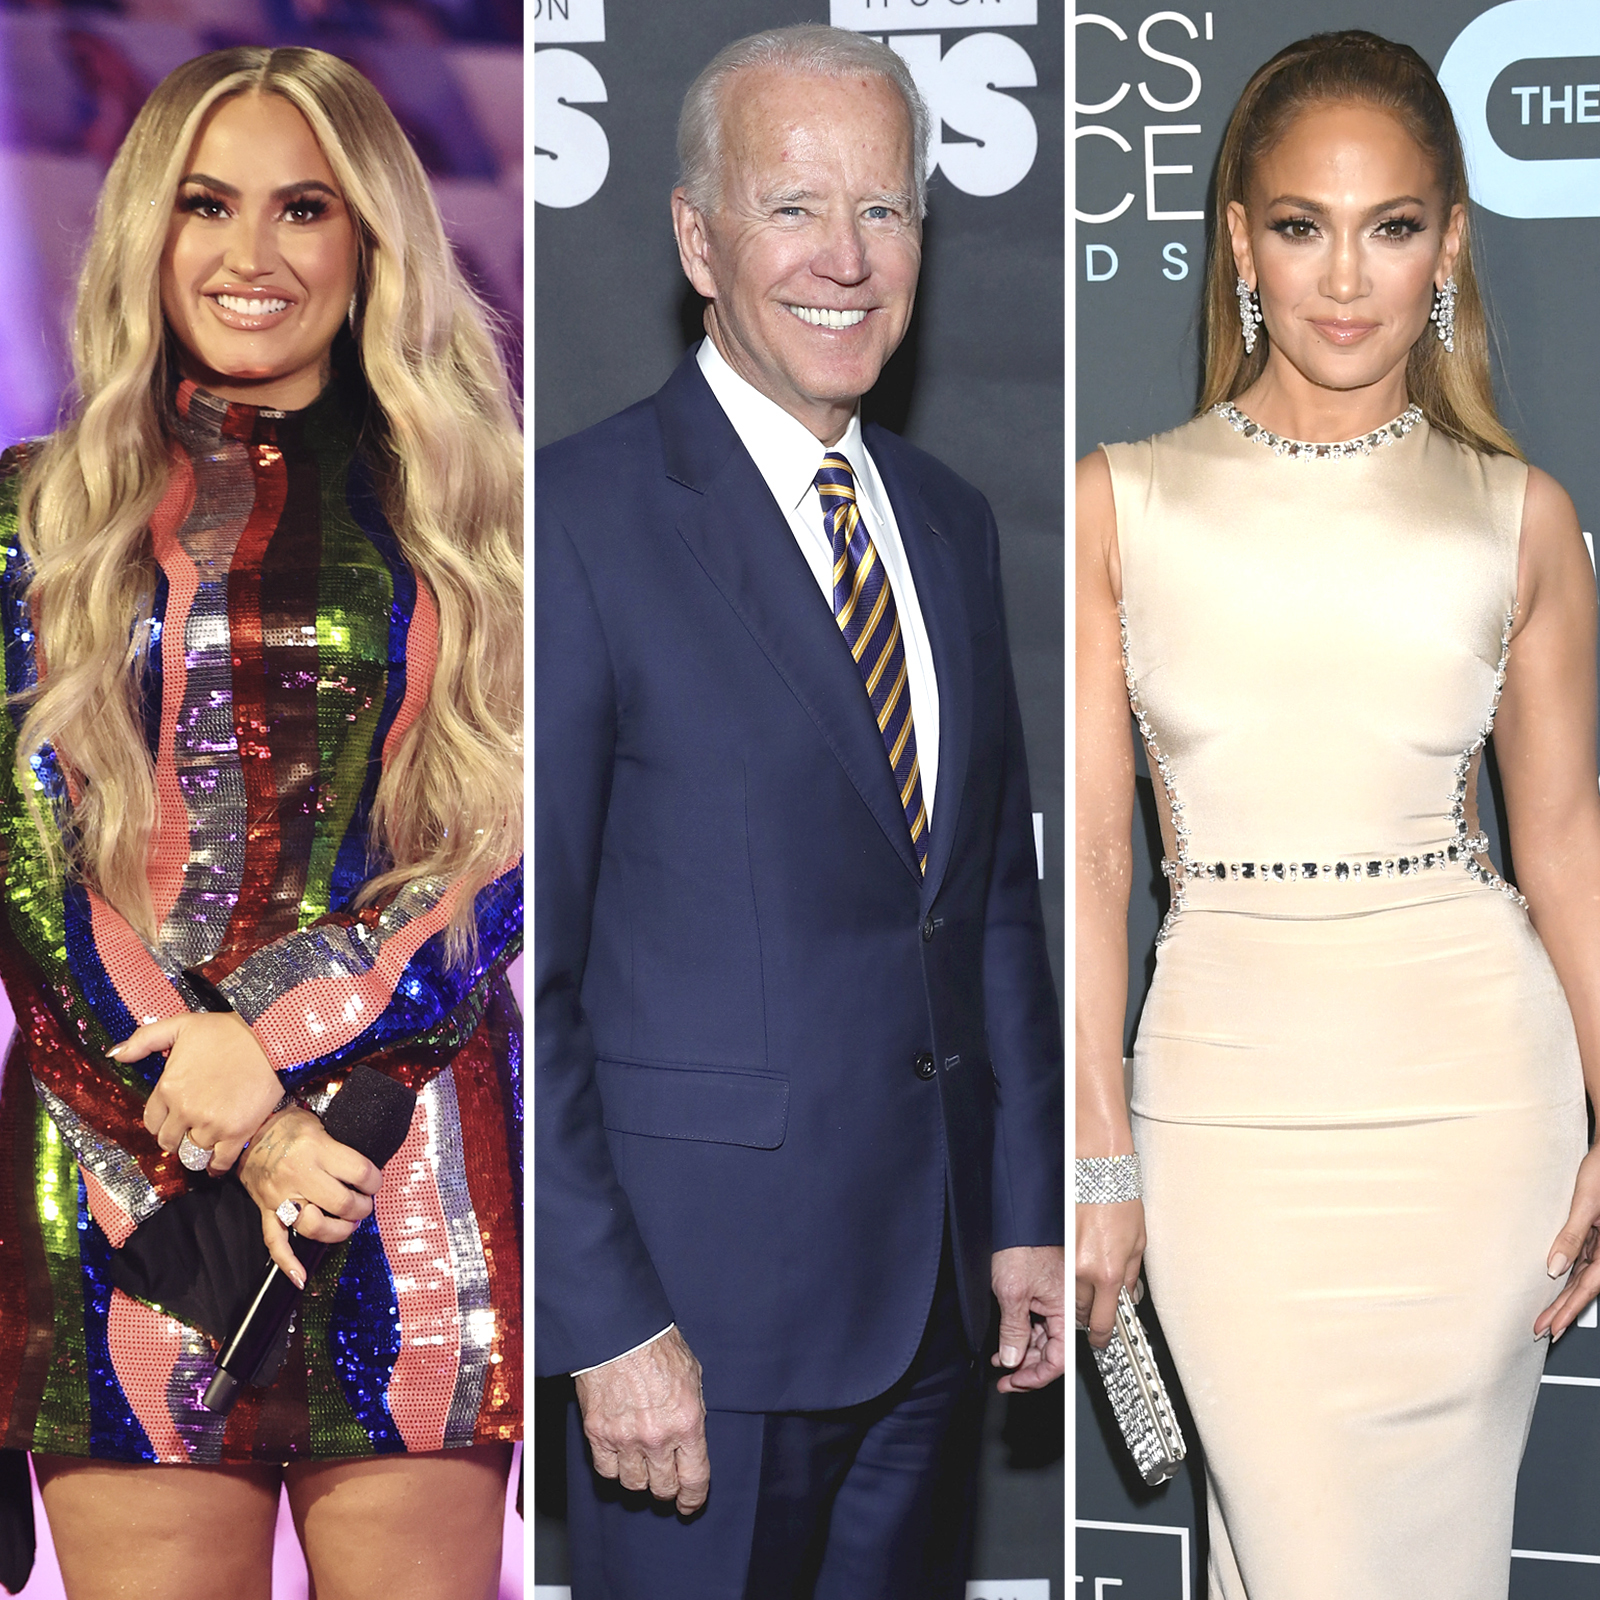 Demi Lovato, Joe Biden and Jennifer Lopez